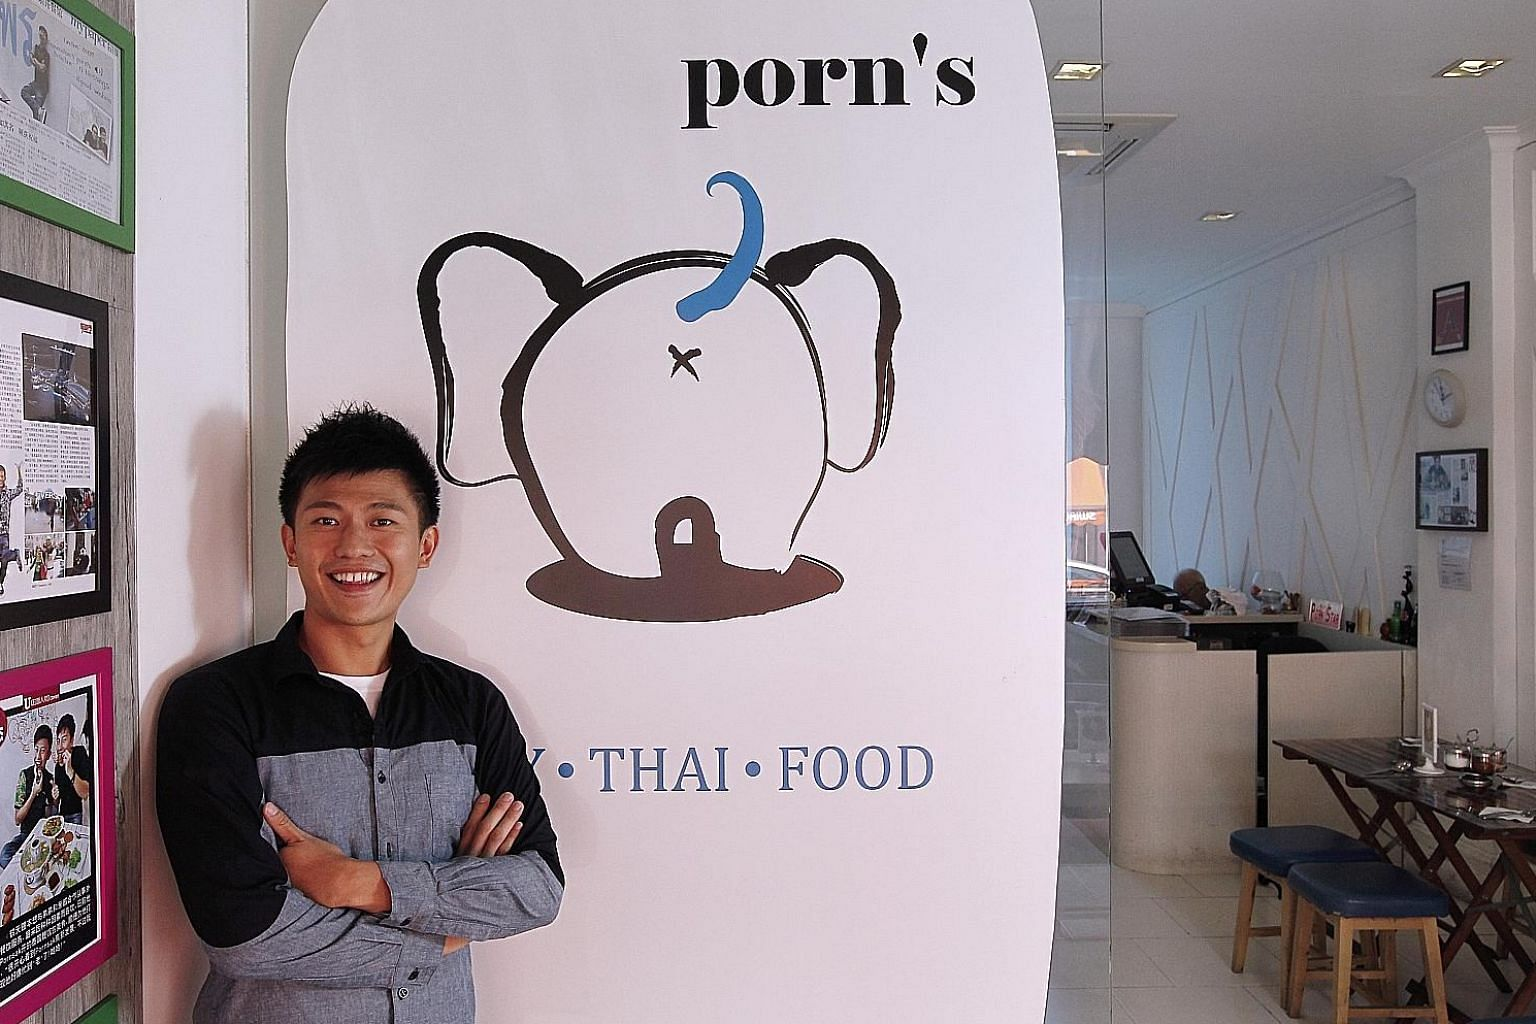 TV host Pornsak Prajakwit and his business partner, who opened the first outlet of Porn's Sexy Thai Food in 2010, agreed to give up their majority stake to Jus Delish Group in November 2016, selling their shares for $2 as Jus Delish had agreed to inj